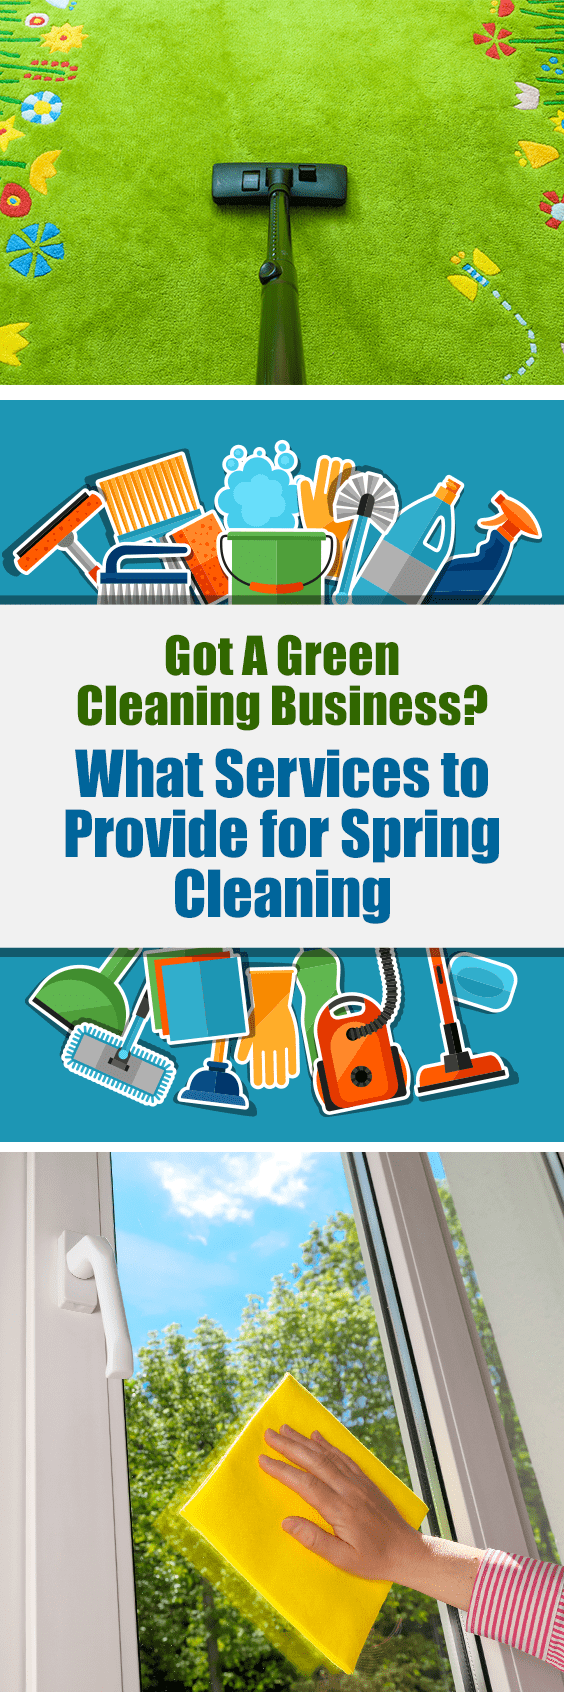 Got a Green Cleaning Business | What Services to Provide for Spring Cleaning ...  Finally spring has arrived!  Cabin fever has been driving us crazy.  This is the time of year we are energized to dust ourselves off and break out of hibernation.  This is also the time when your customers are seeking a good spring cleaning with perhaps a renewed desire to embark on a green cleaning regime.